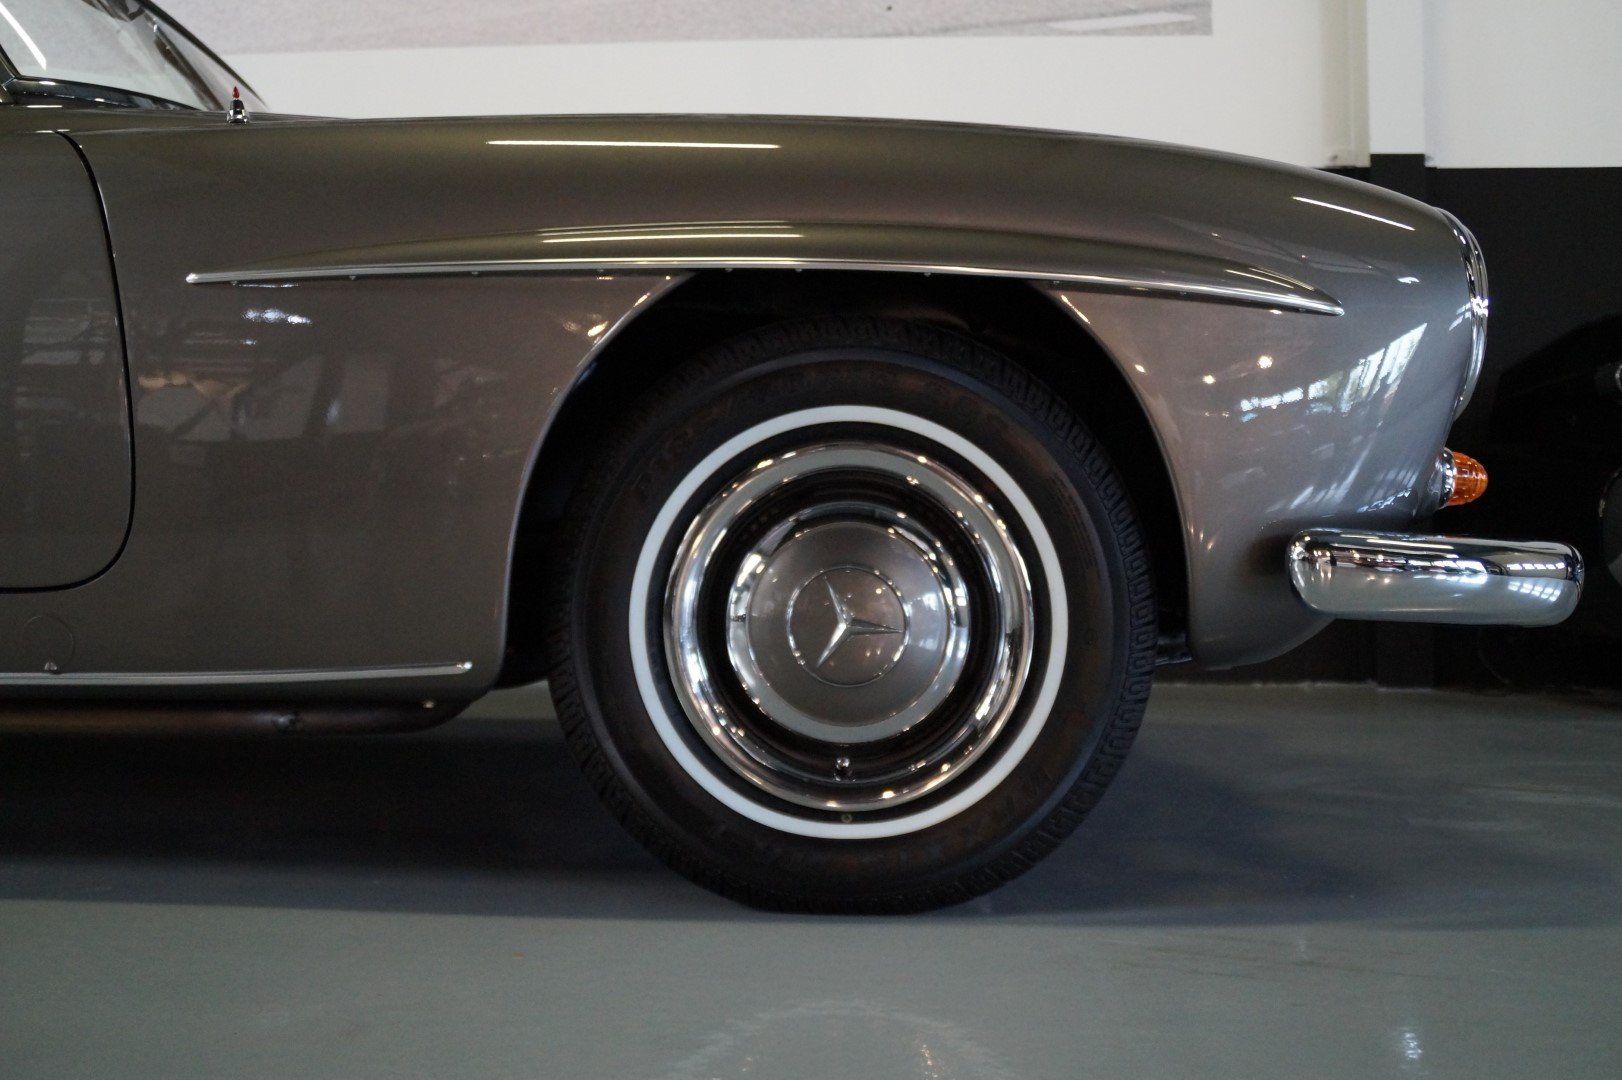 MERCEDES-BENZ 190 SL 190SL Concourse restored (1957) For Sale (picture 6 of 6)